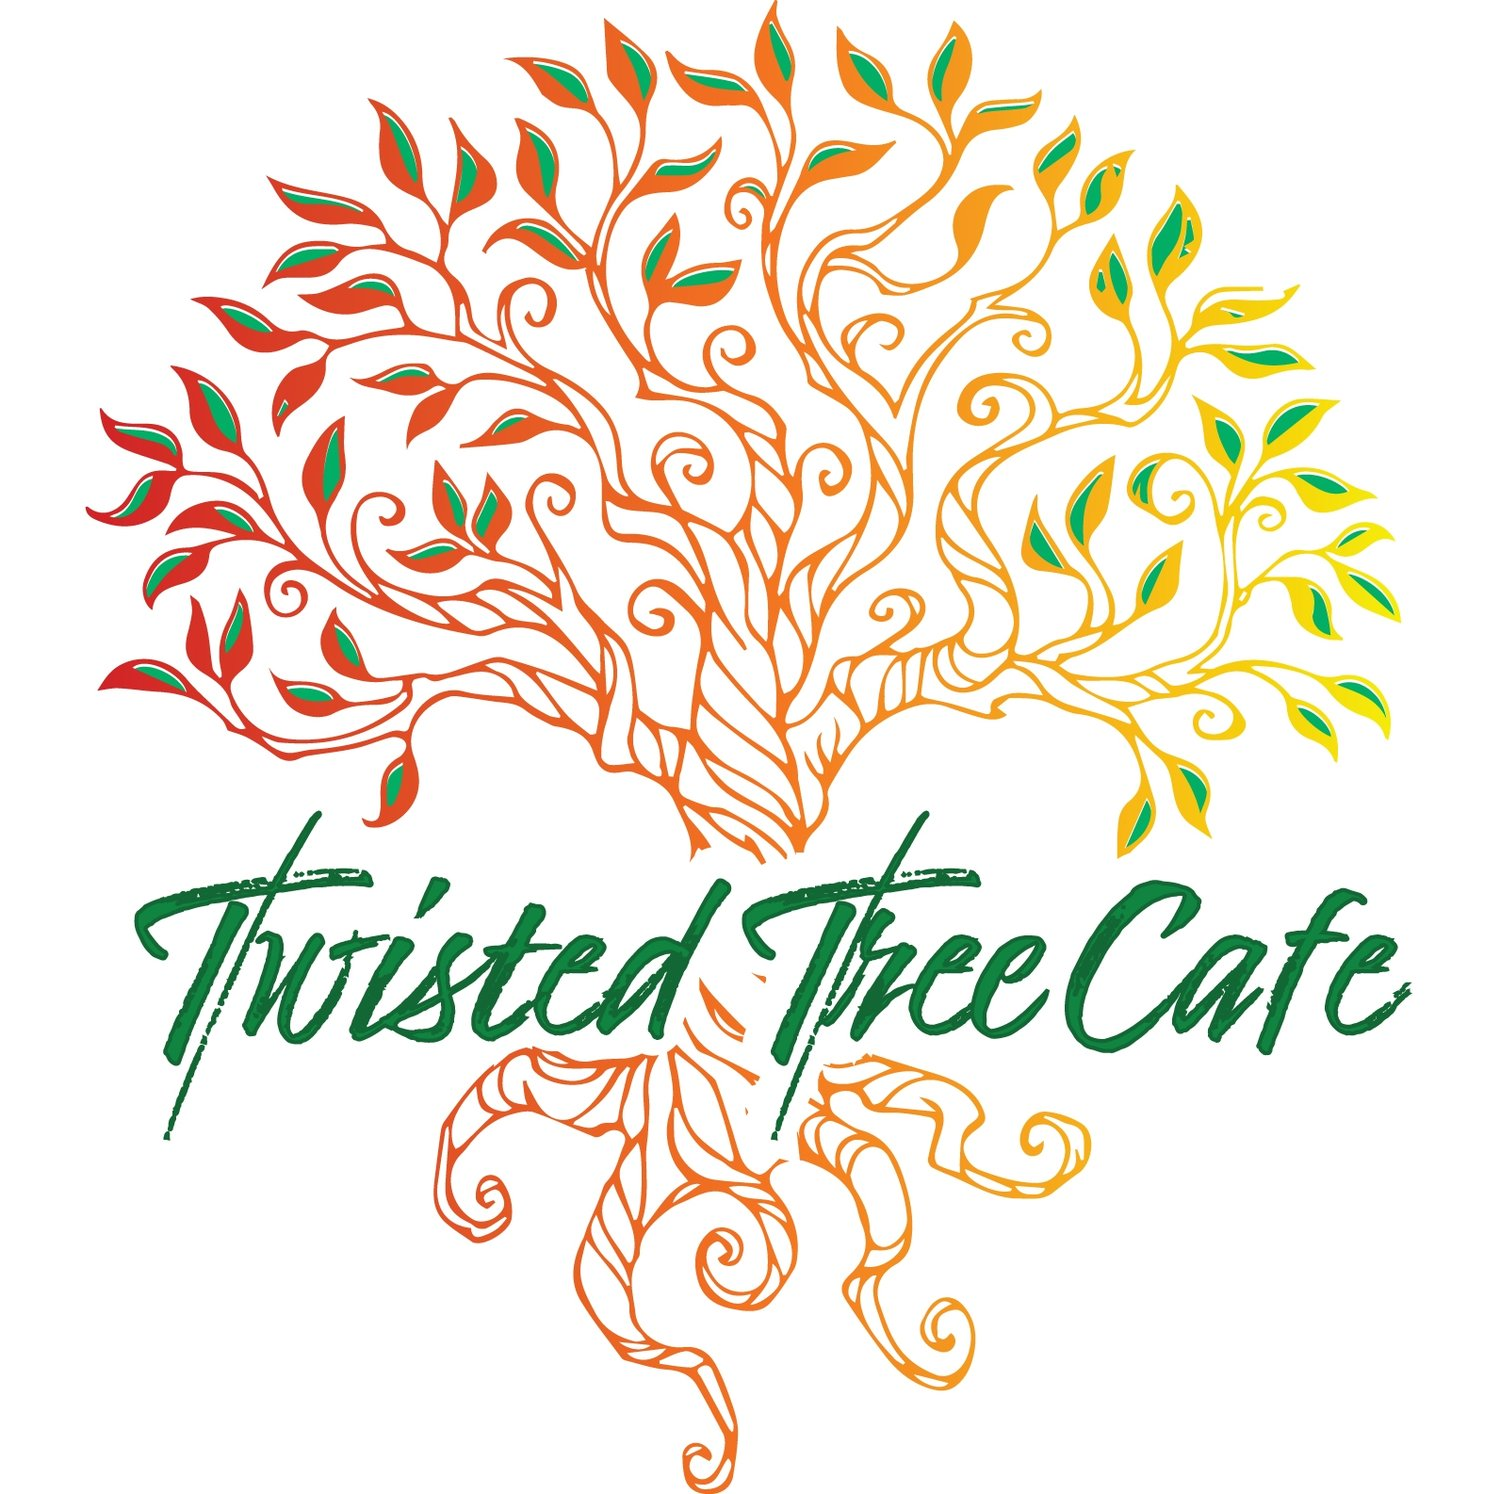 Twisted Tree Cafe